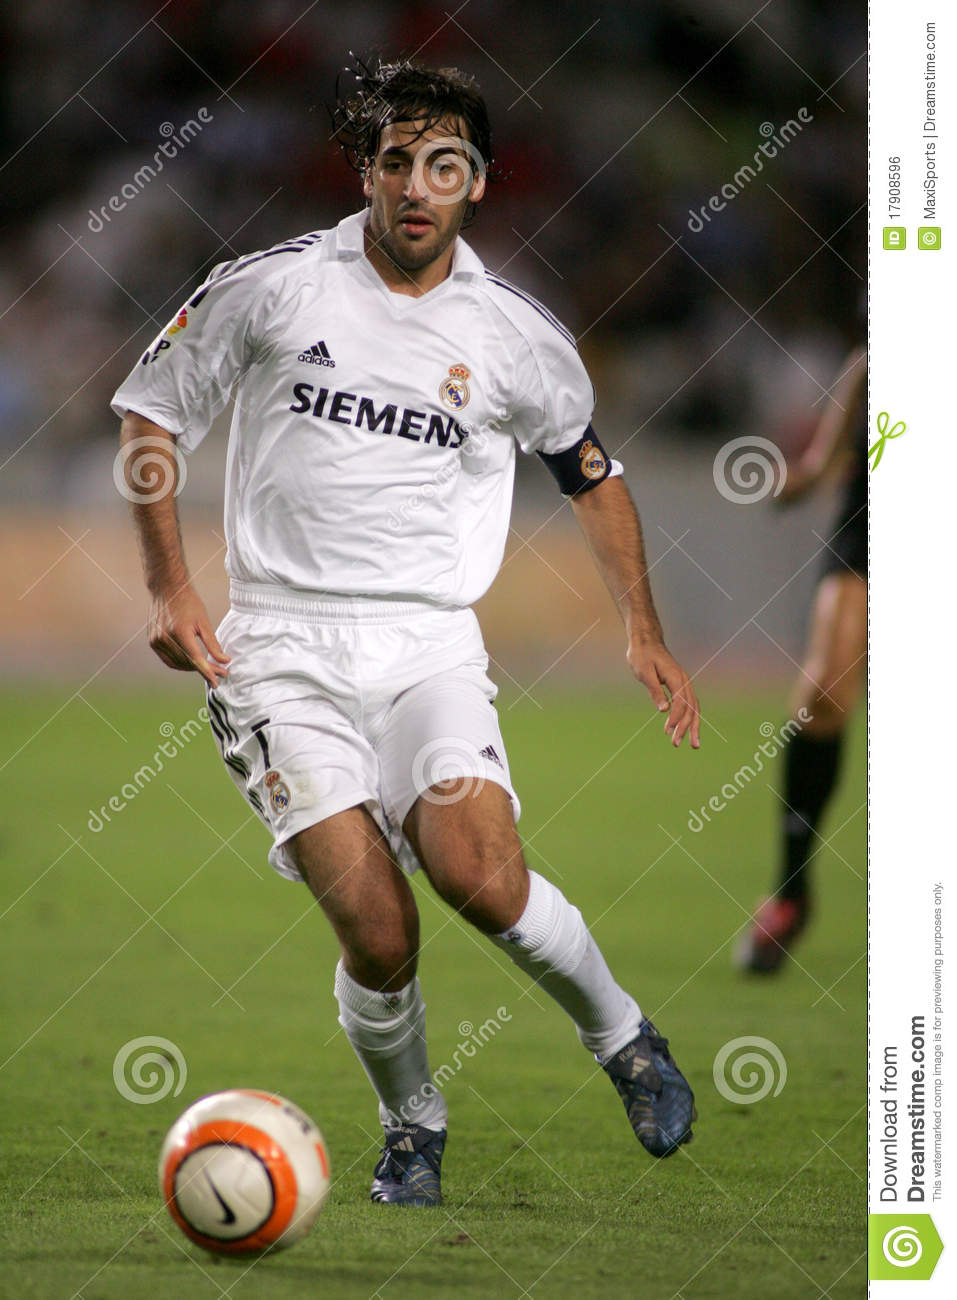 Image Result For Futbol X Real